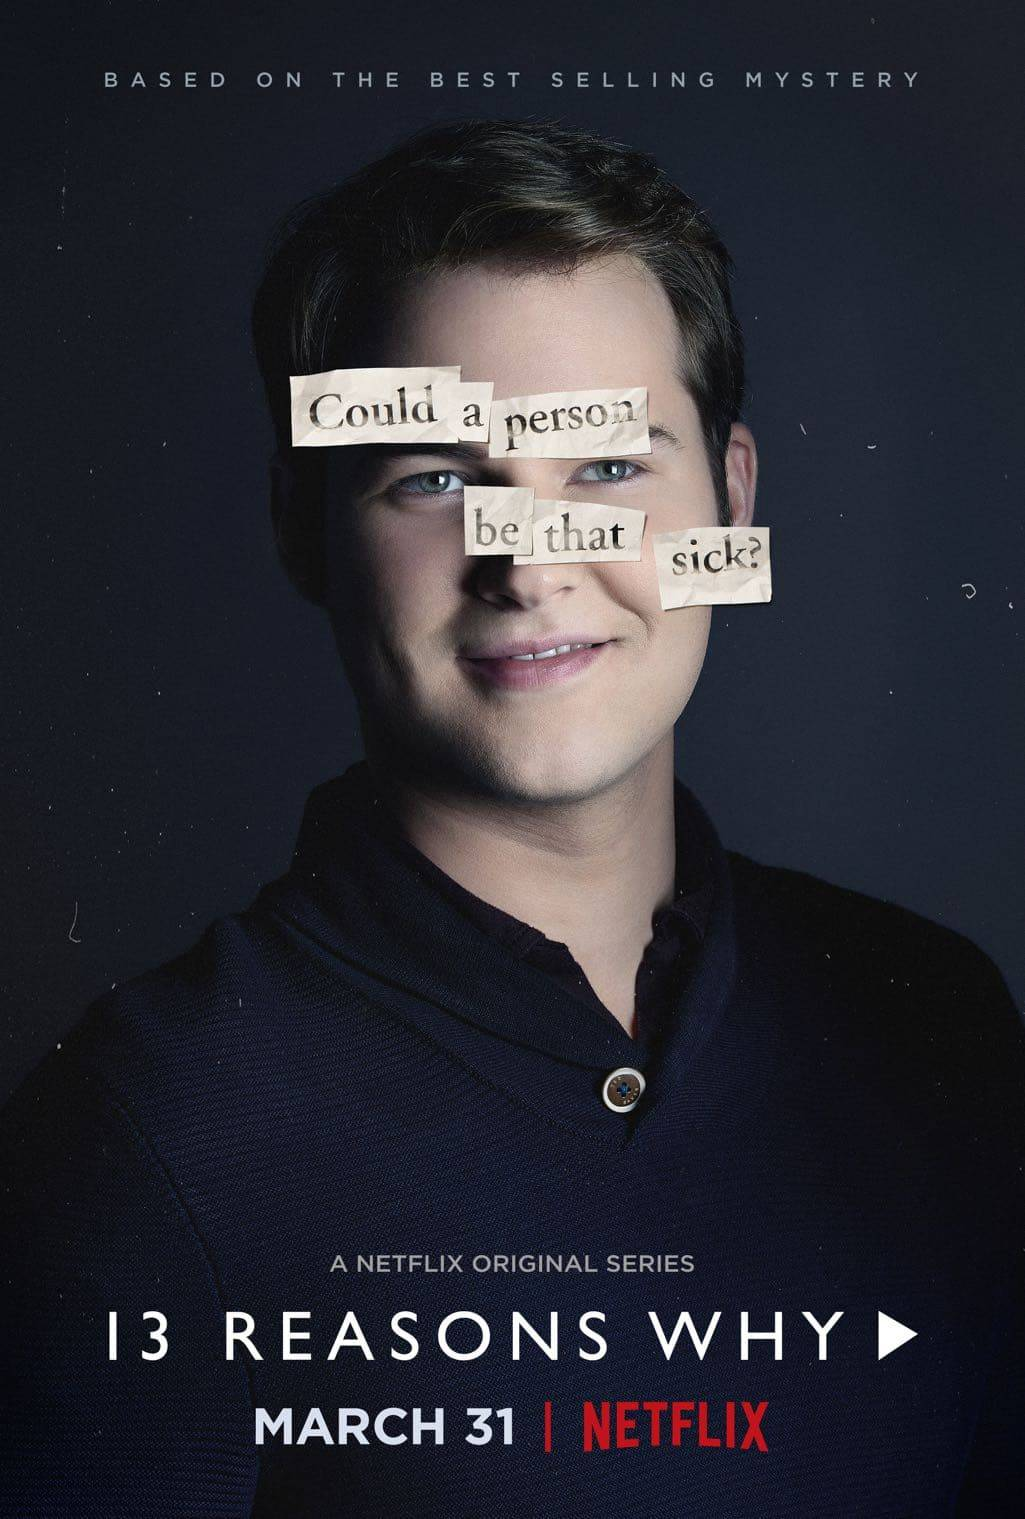 3 Reasons Why Character Poster Justin Prentice as Bryce Walker